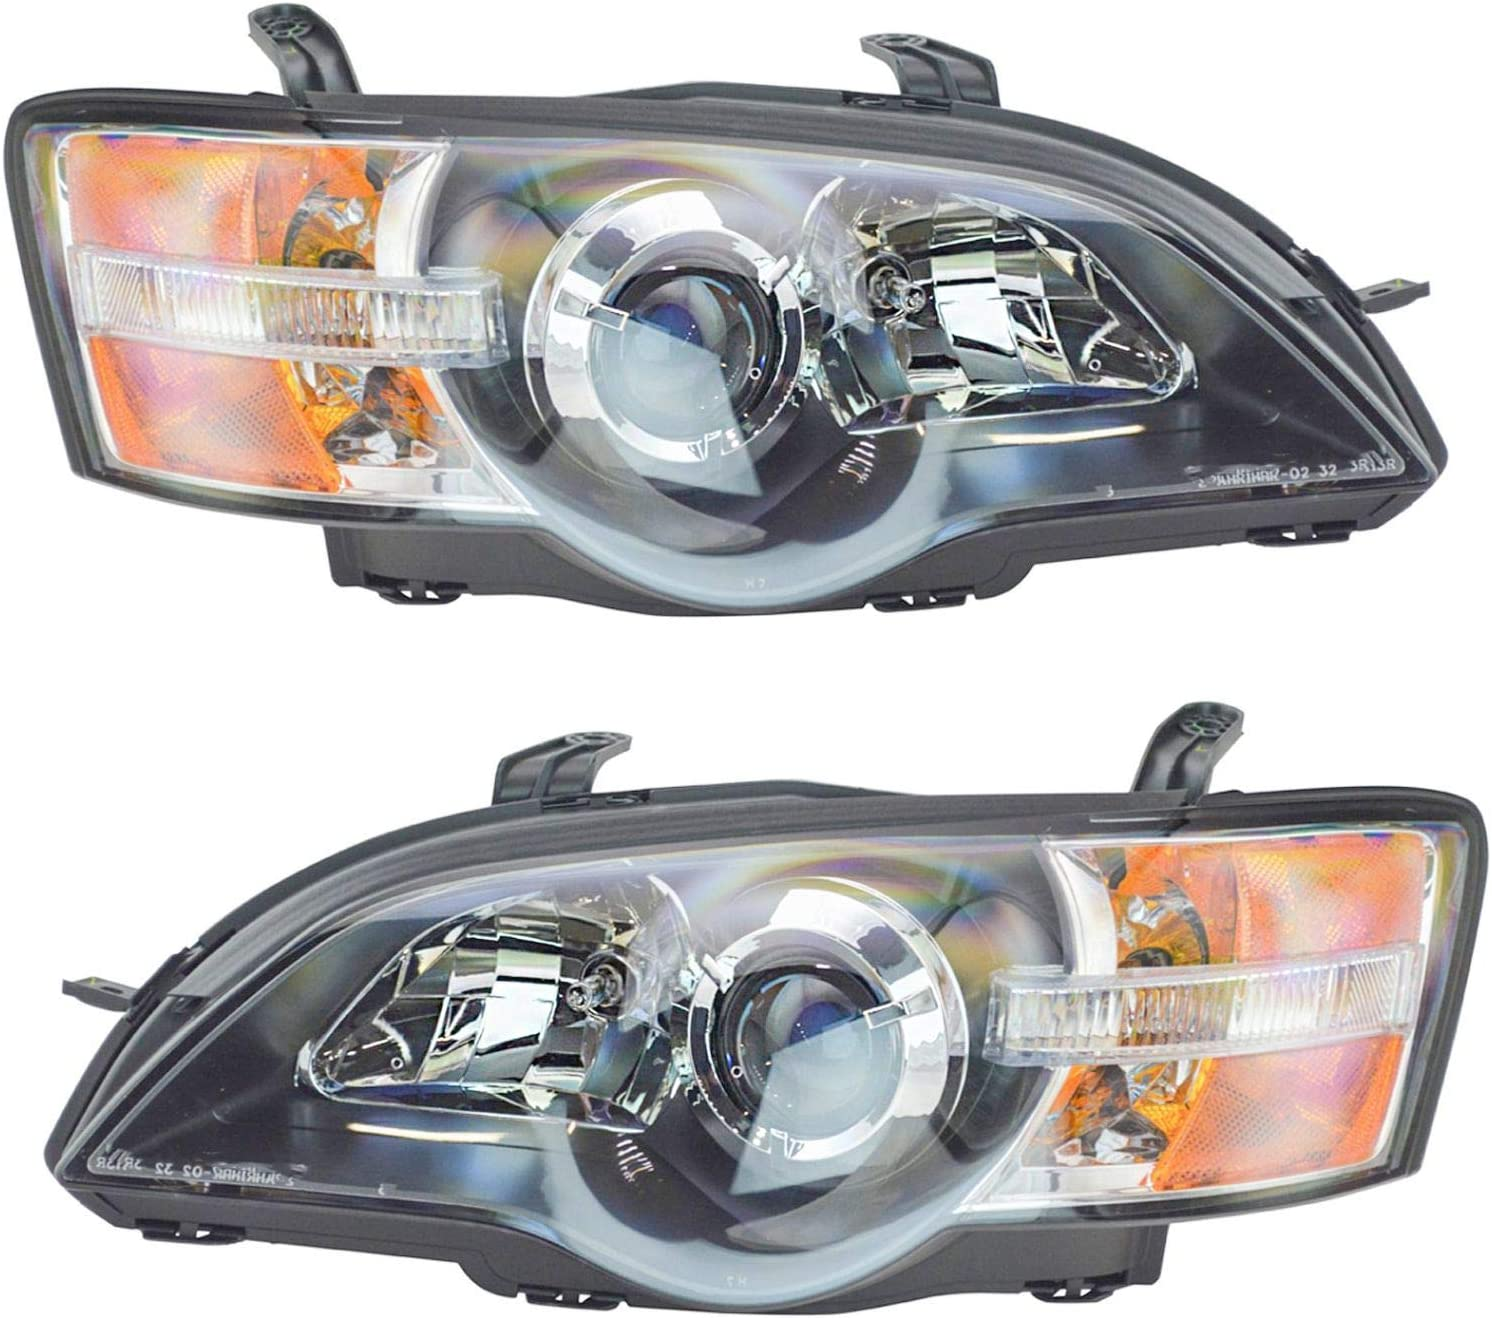 Fits 2005-07 CHRYSLER 300 SIGNAL LIGHT//LAMP  Pair Left and Right Set